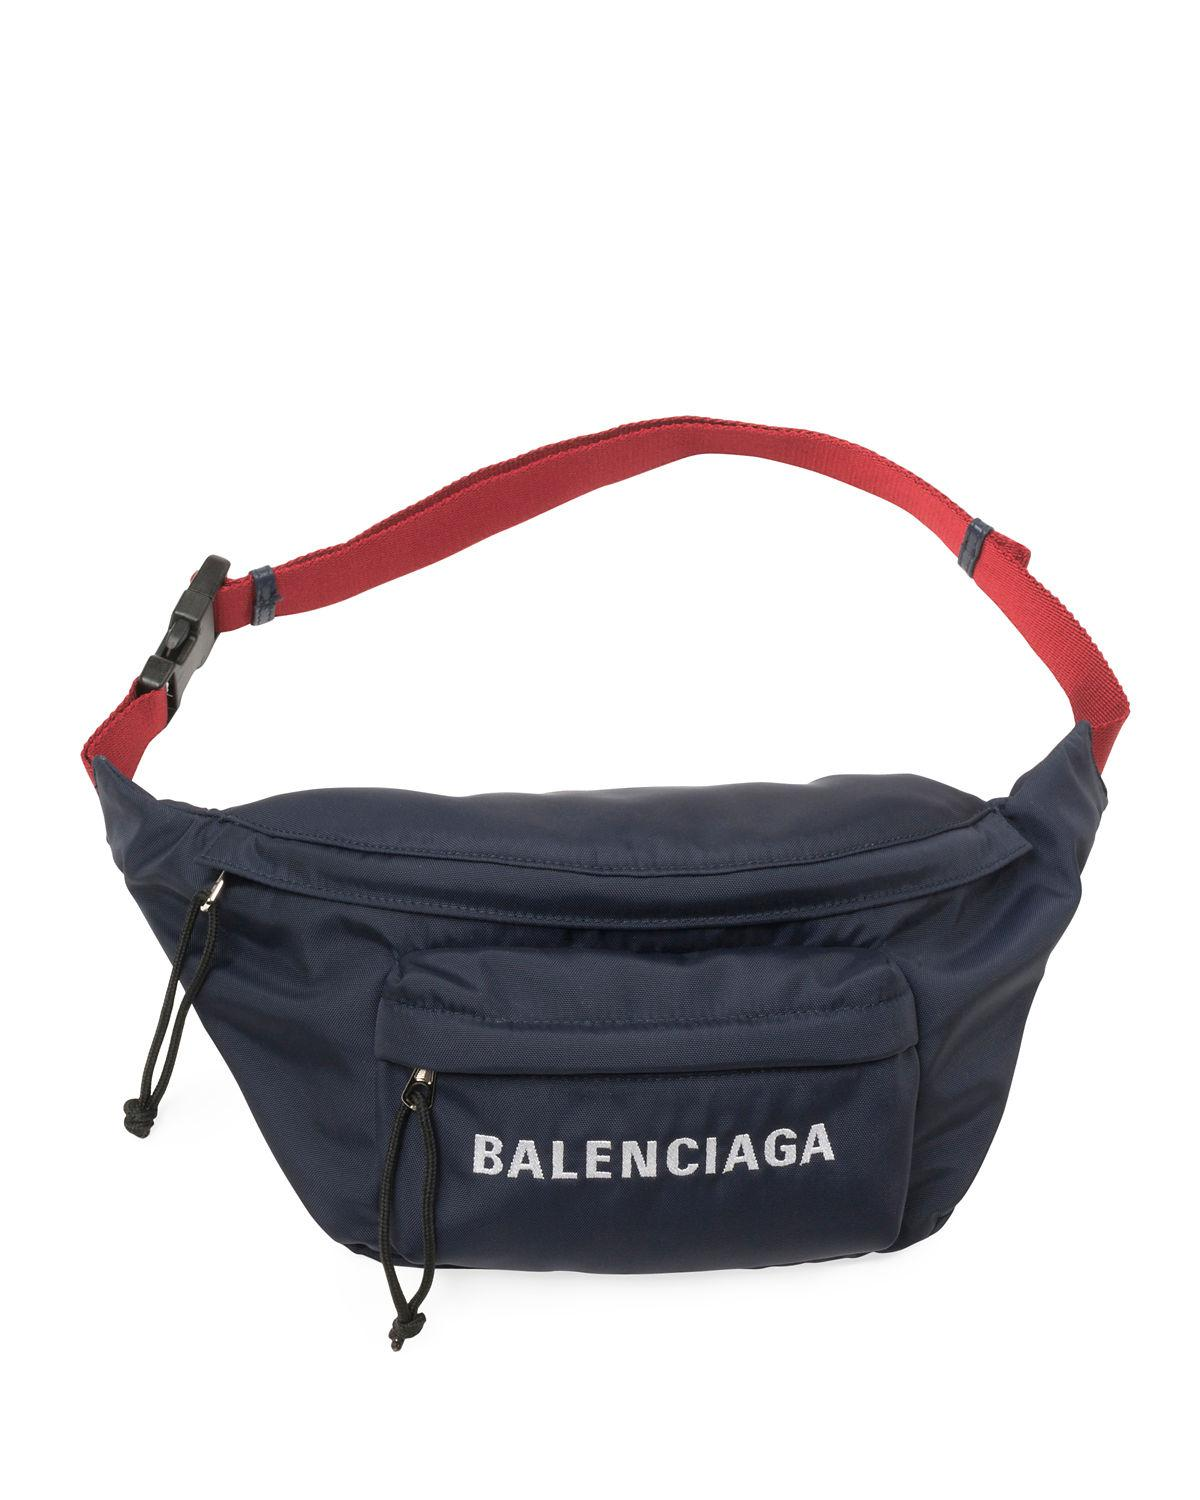 e01d601b0f94 Balenciaga Wheel Canvas Belt Fanny Pack Bag With Logo in Black for ...